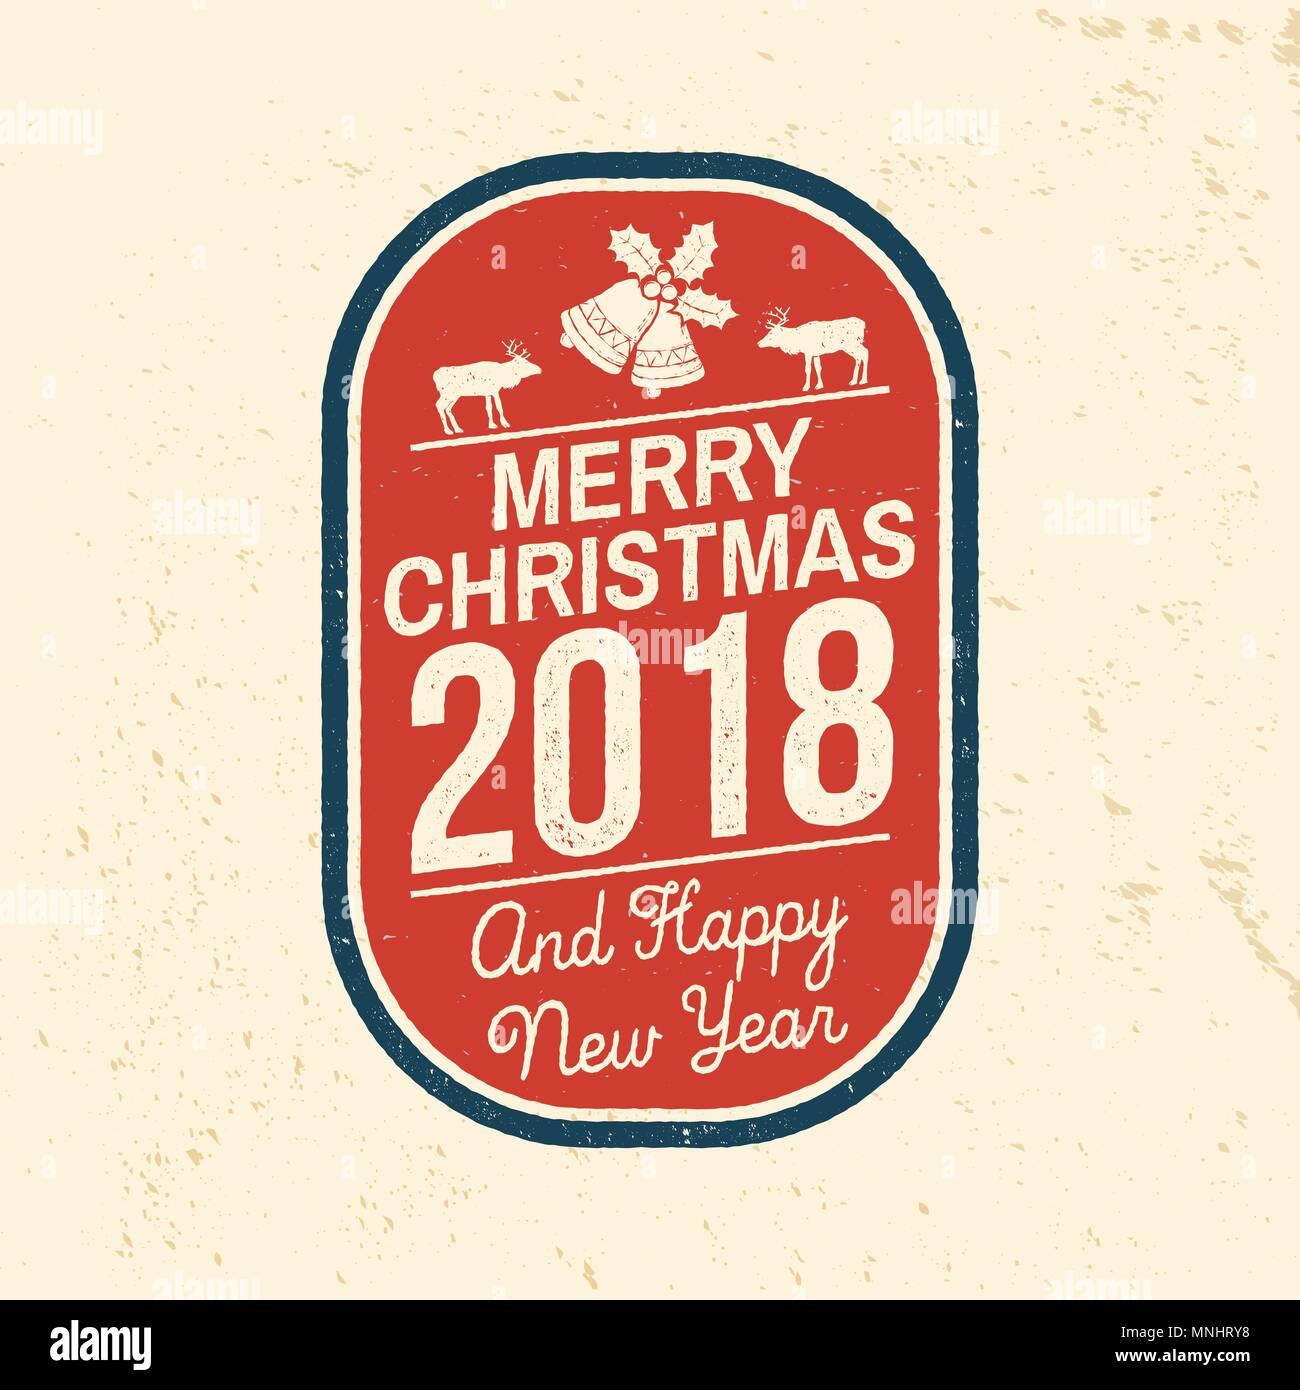 merry christmas and happy new year 2018 retro template with christmas bells and reindeers vector illustration xmas design for congratulation cards